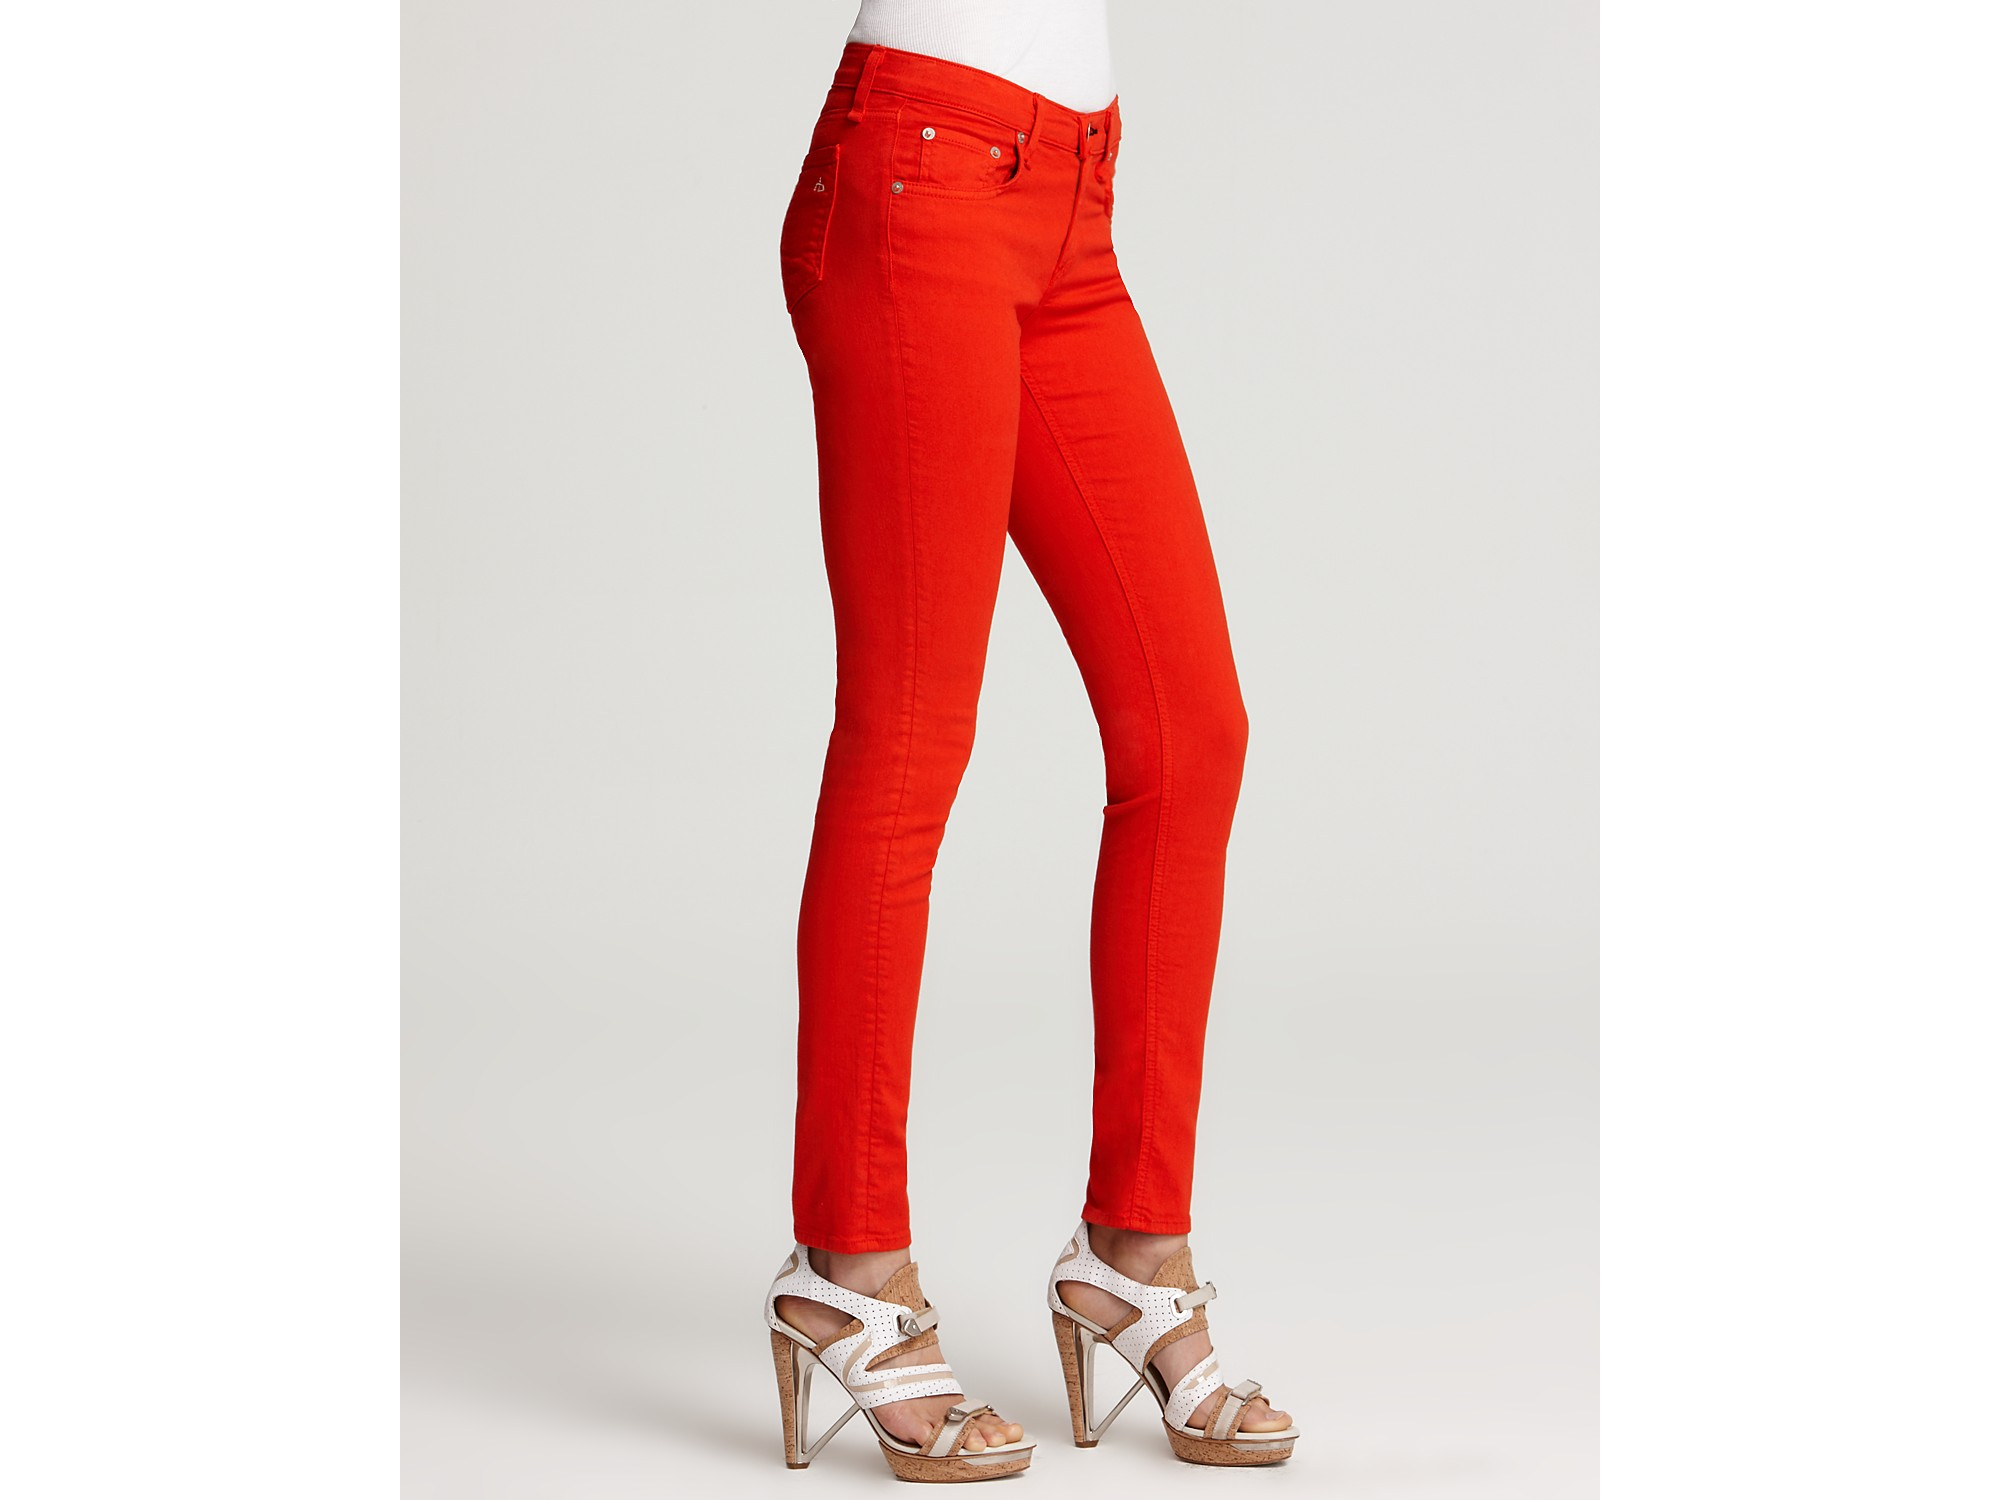 Bright orange skinny jeans – Global fashion jeans collection